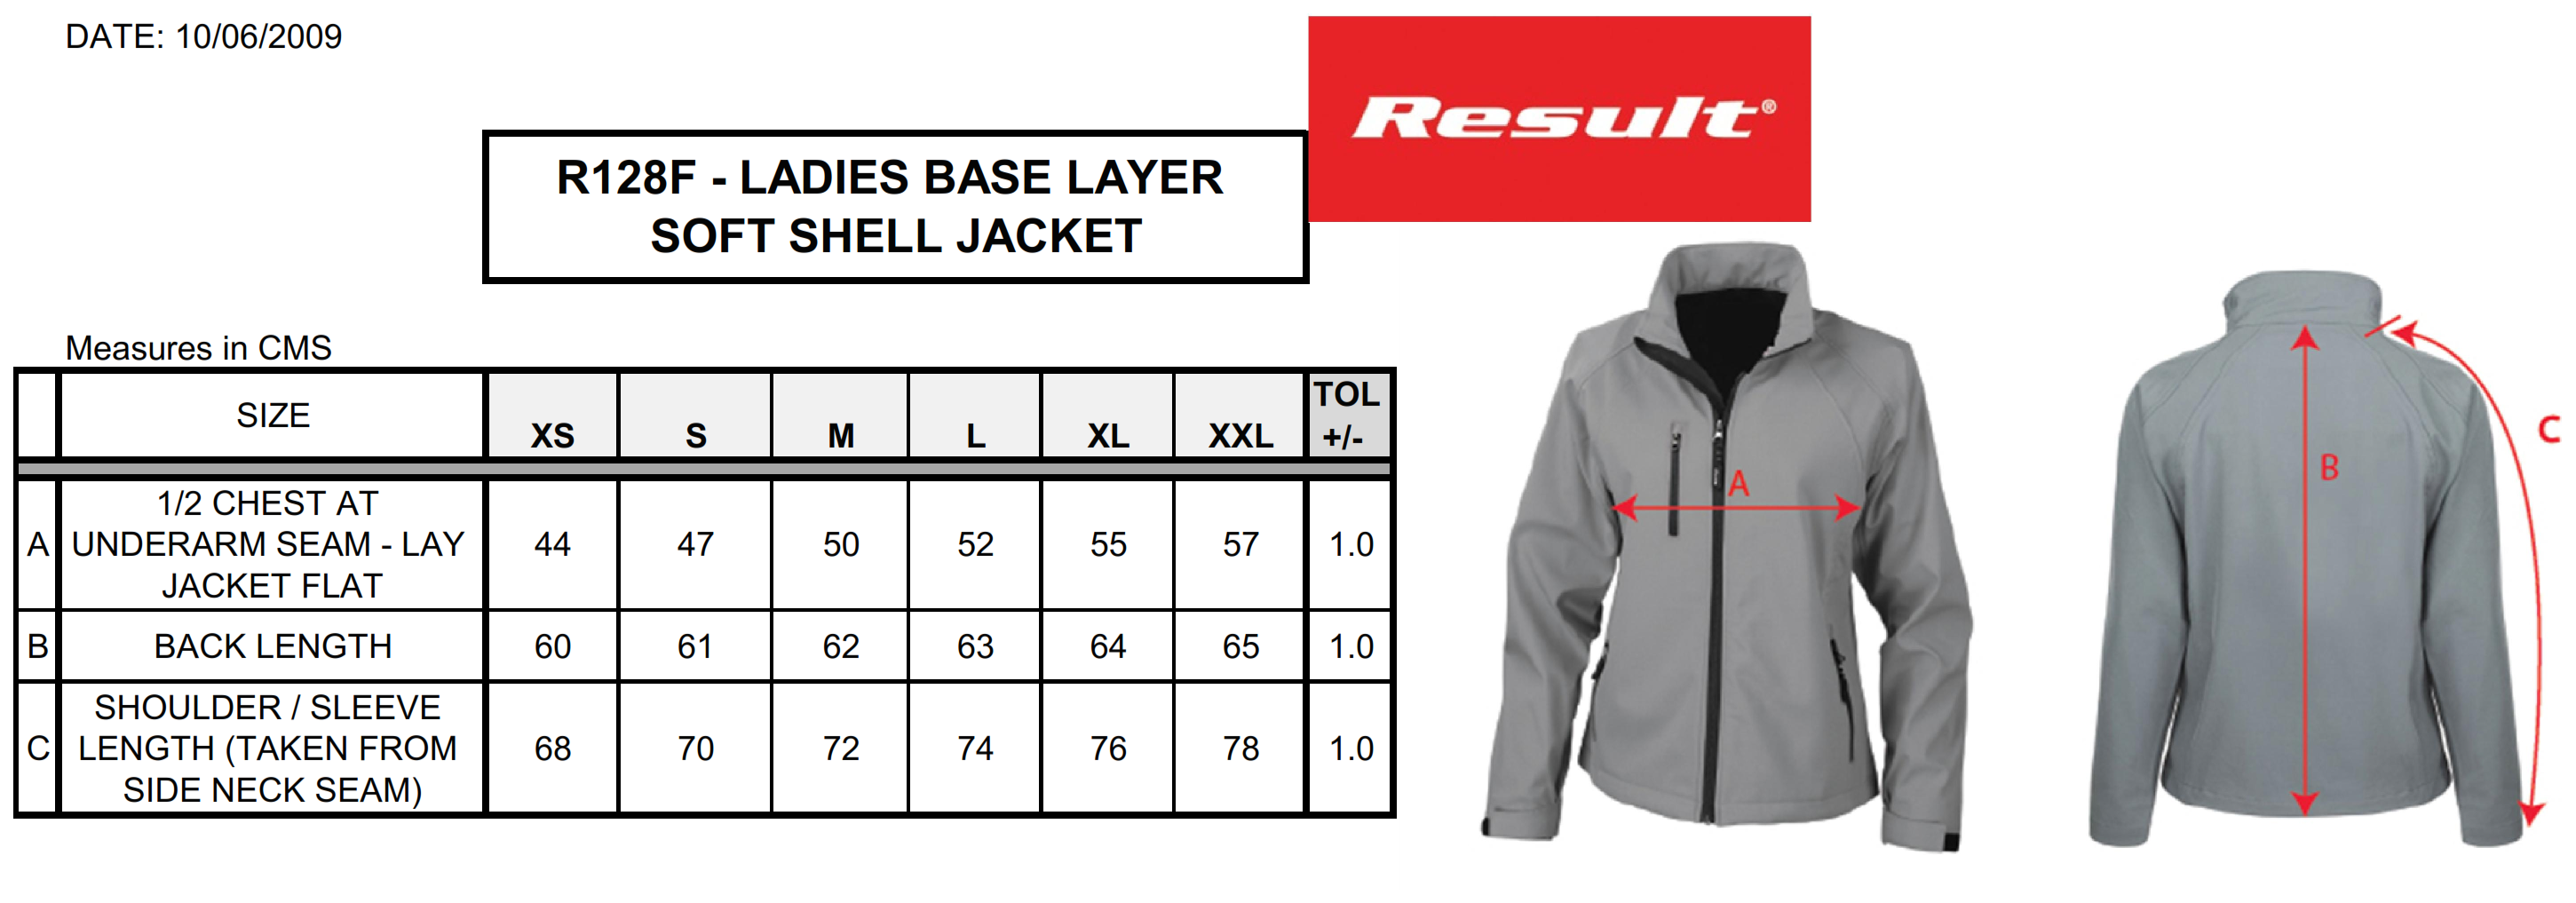 Result: Ladies Base Layer Soft Shell R128F